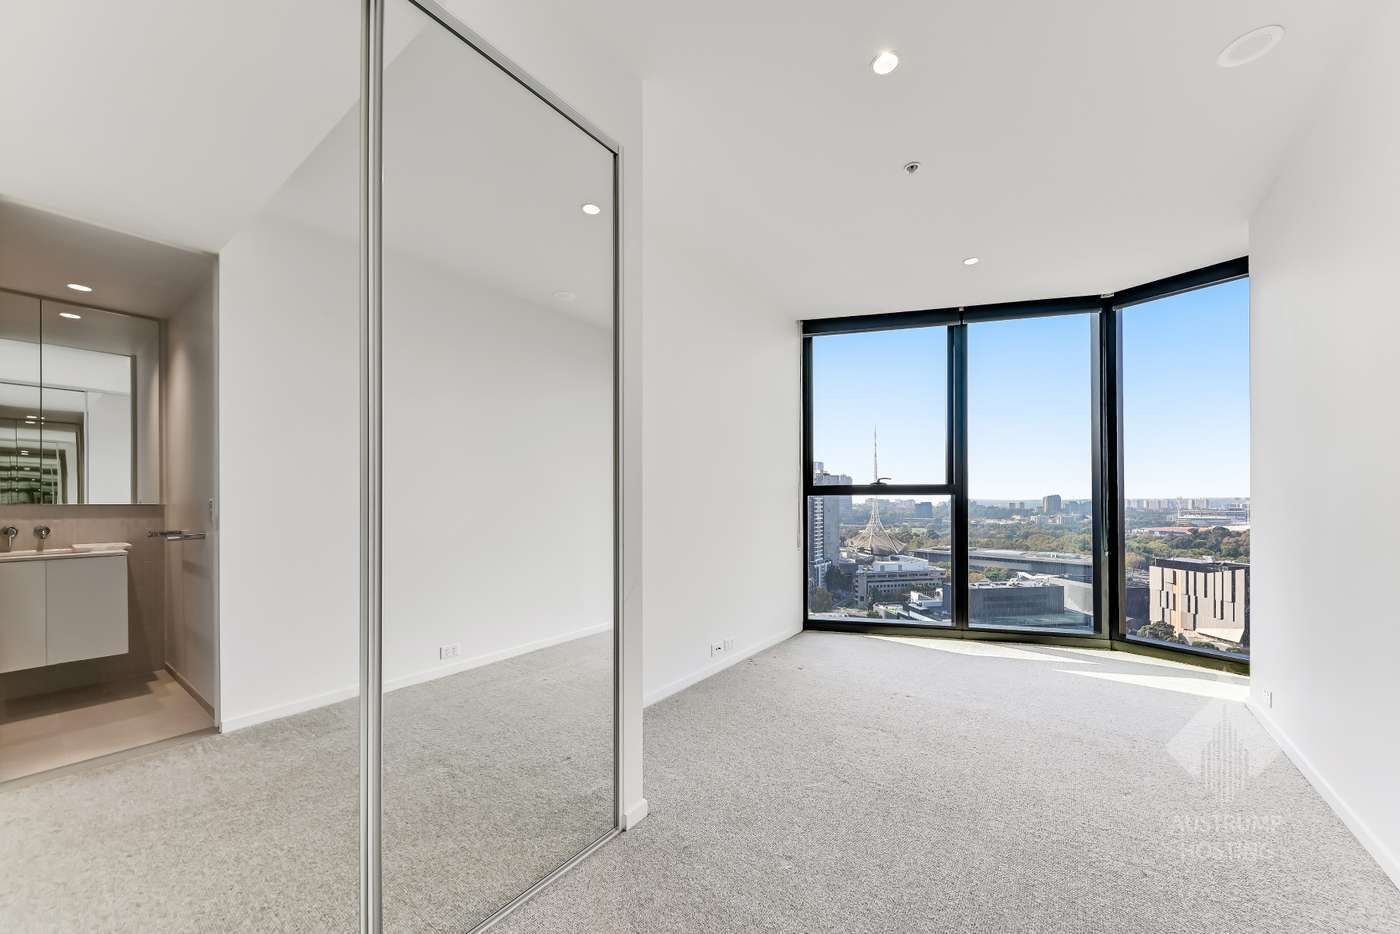 Sixth view of Homely apartment listing, 2201/18 Hoff boulevard, Southbank VIC 3006